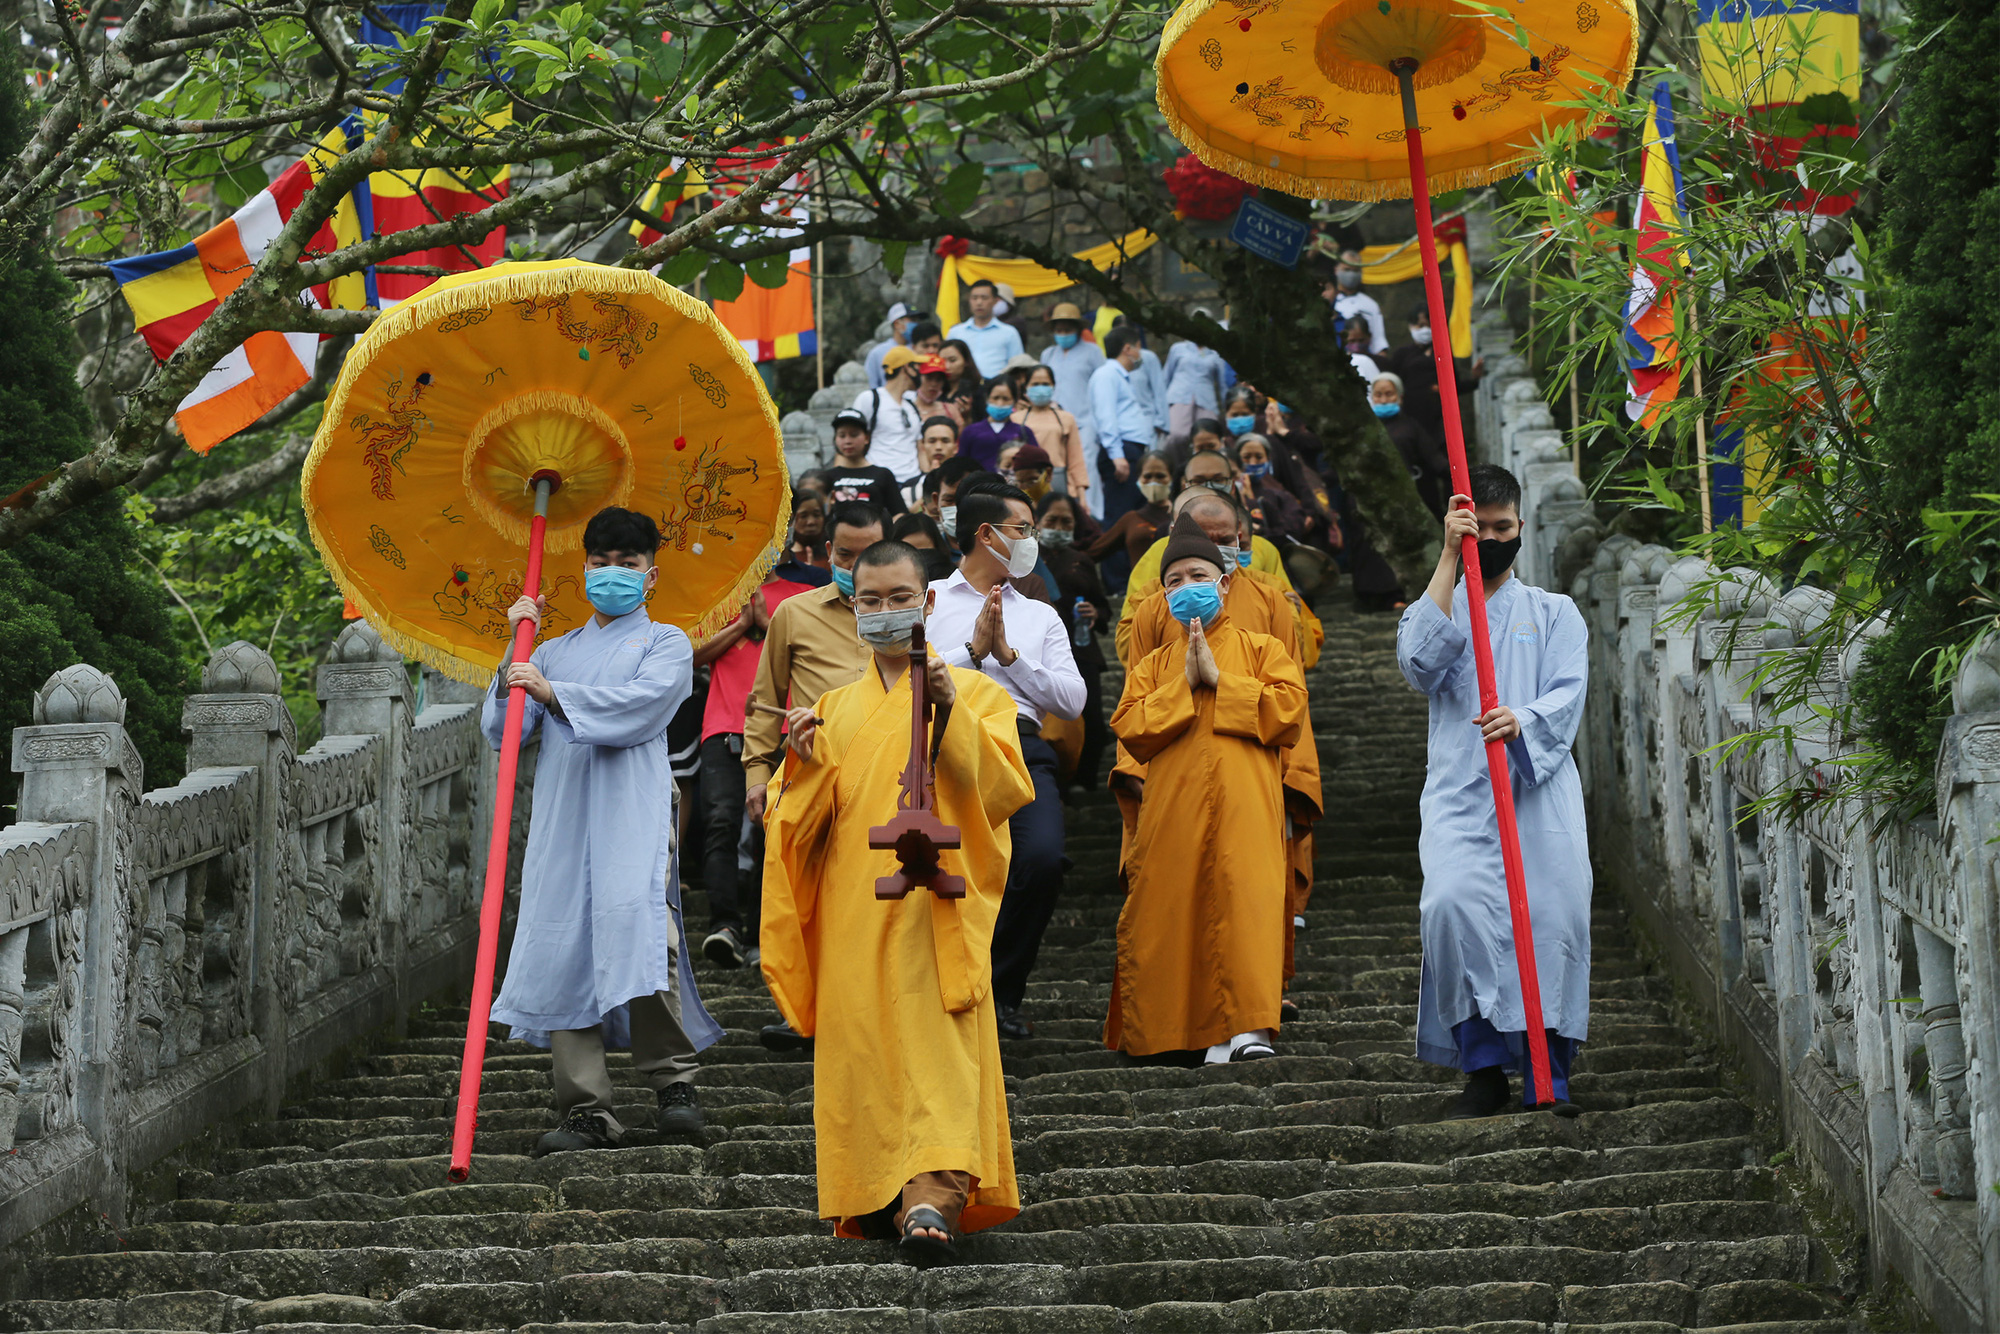 Buddhists take part in a Buddha's Birthday ceremony at Hoa Yen Pagoda on Yen Tu Mountain, Quang Ninh Province, Vietnam, May 5, 2020. Photo: Le Anh / Tuoi Tre